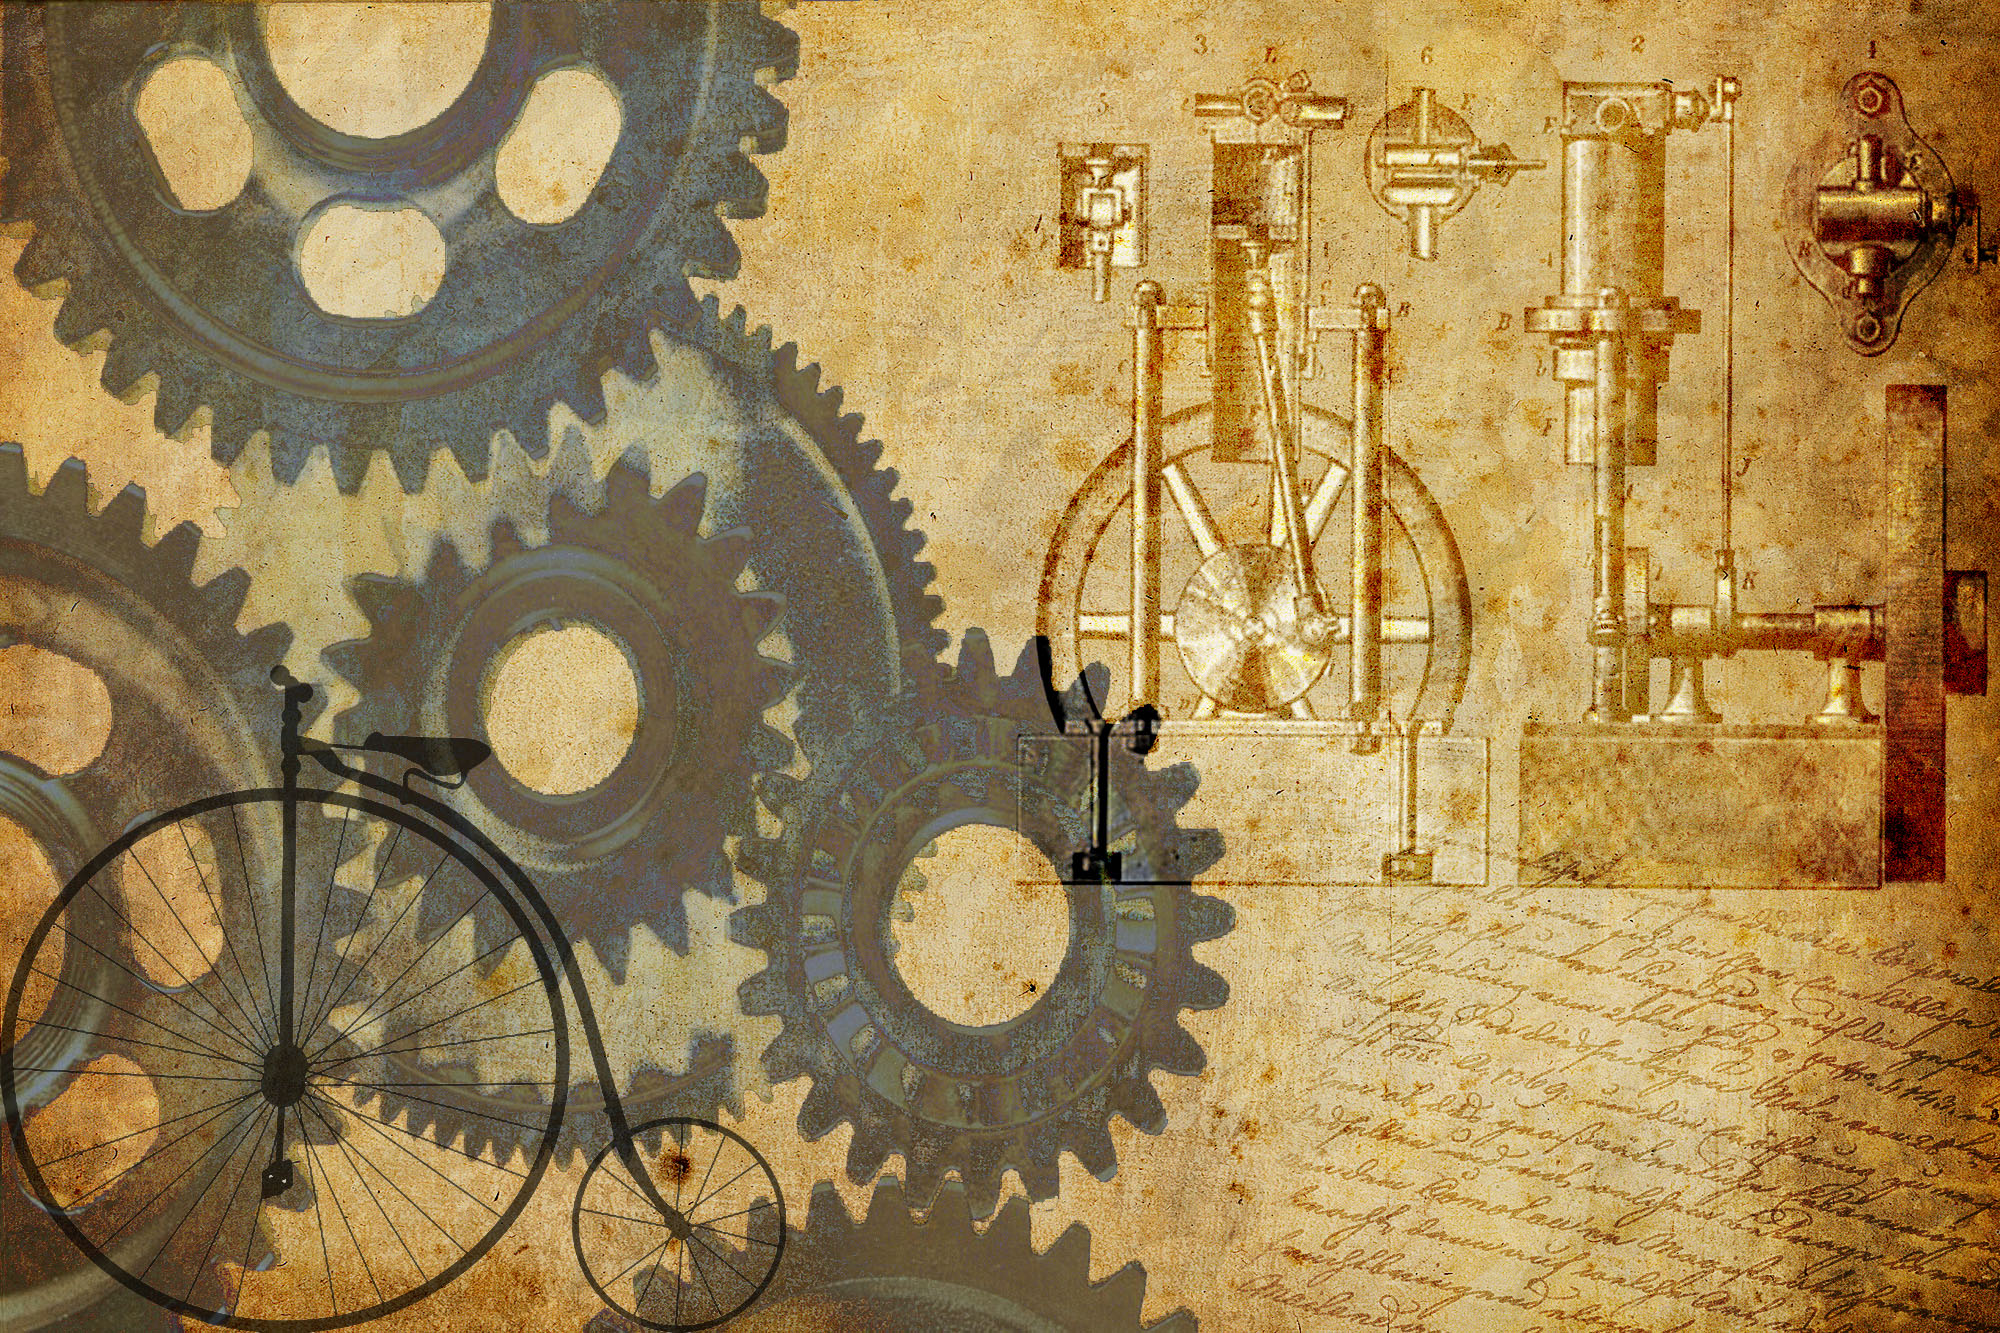 Steampunk Wallpaper By Satyrgod On Deviantart